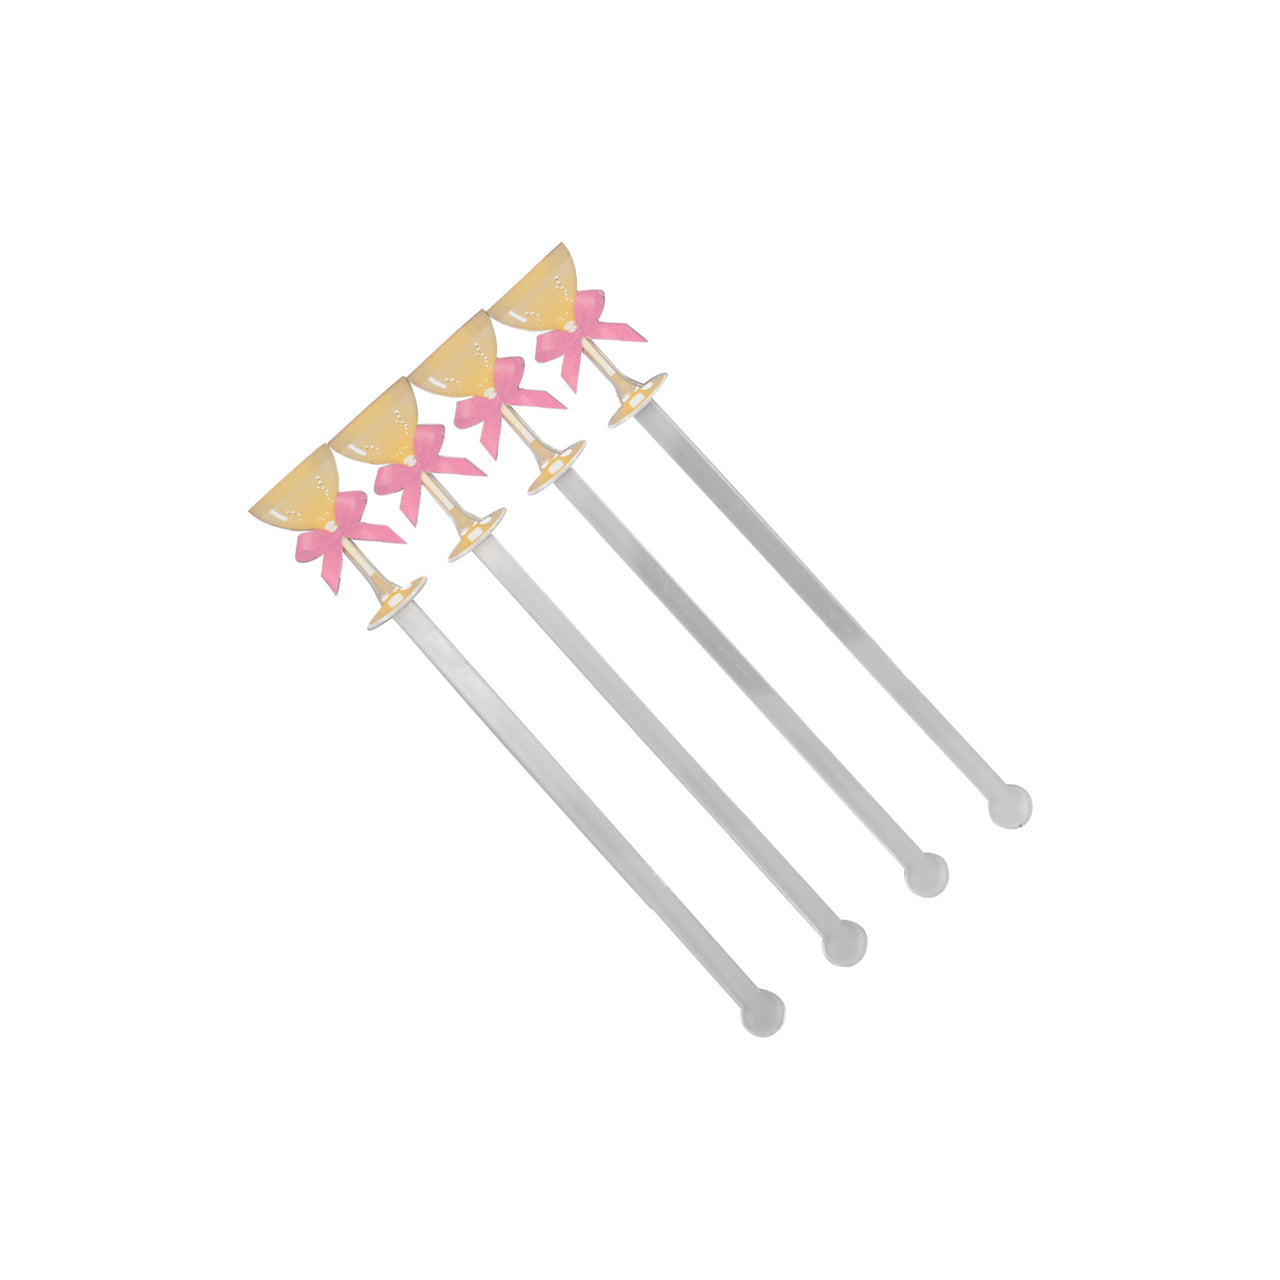 Swizzle Sticks, Set of 4